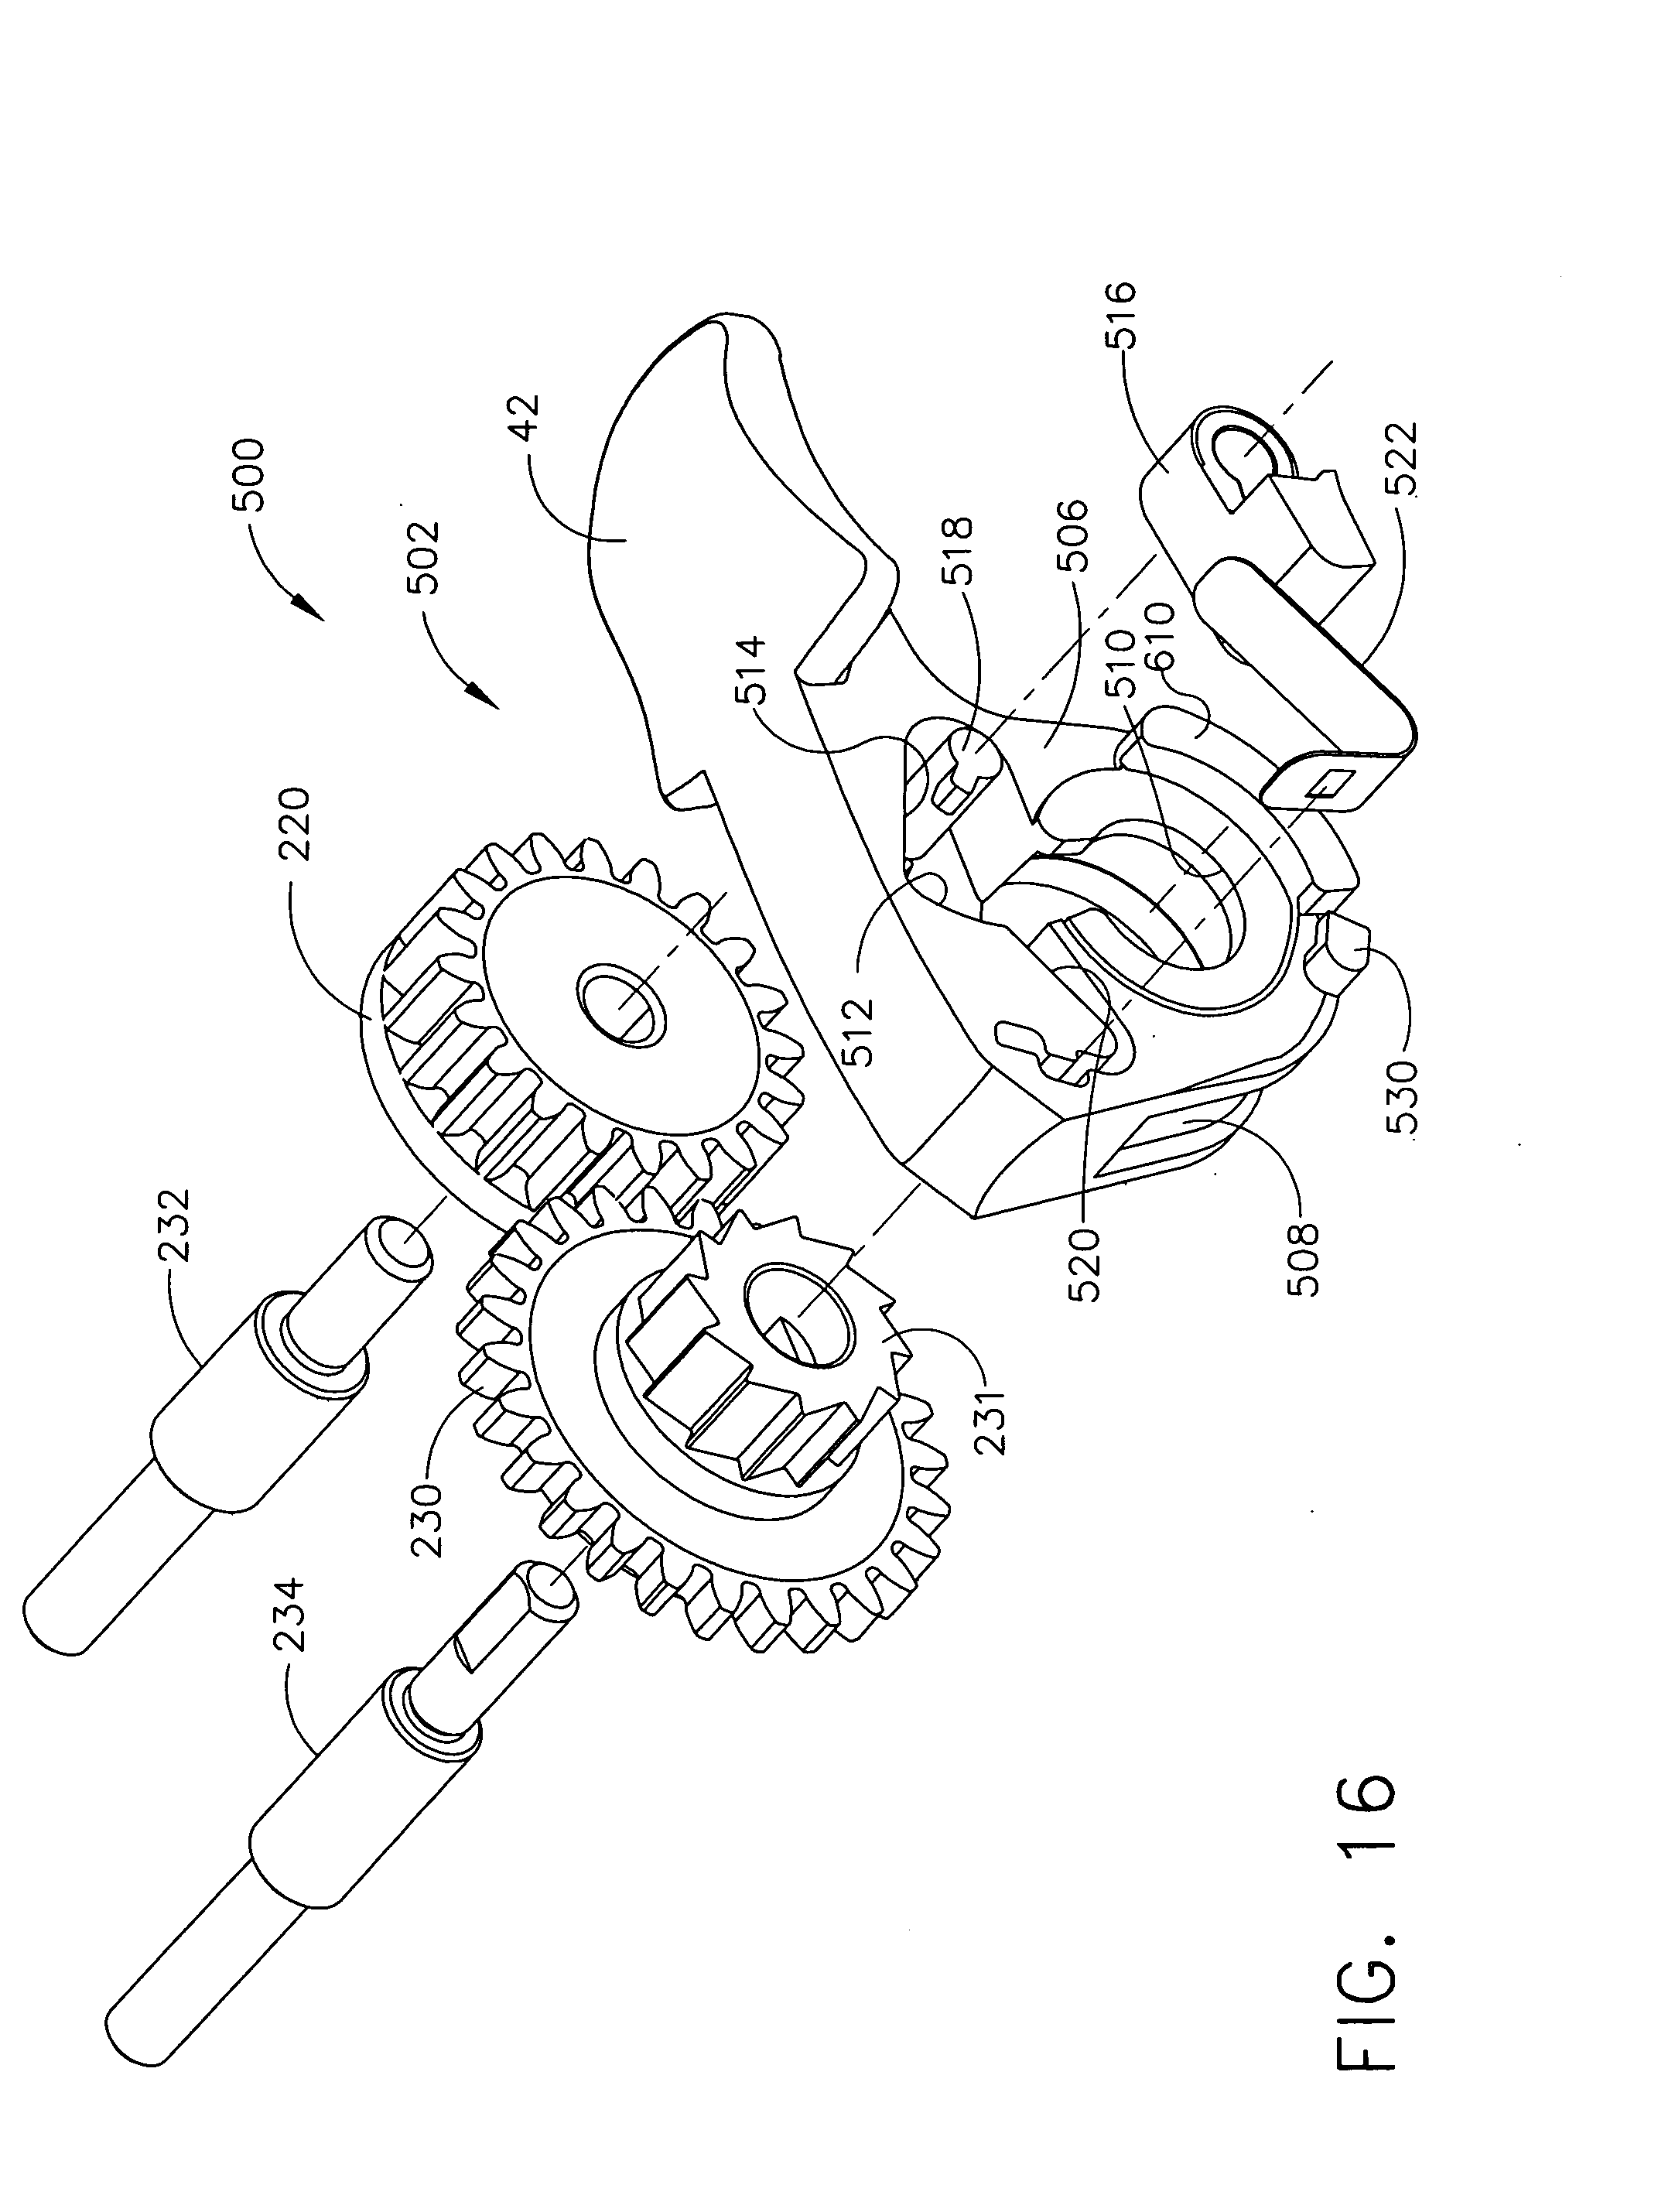 S60744 additionally 5 Things To Stay Away From While Driving Automatic Transmission Vehicles likewise Schematics g also Starter 2 in addition P0720 2002 nissan altima. on transmission pawl